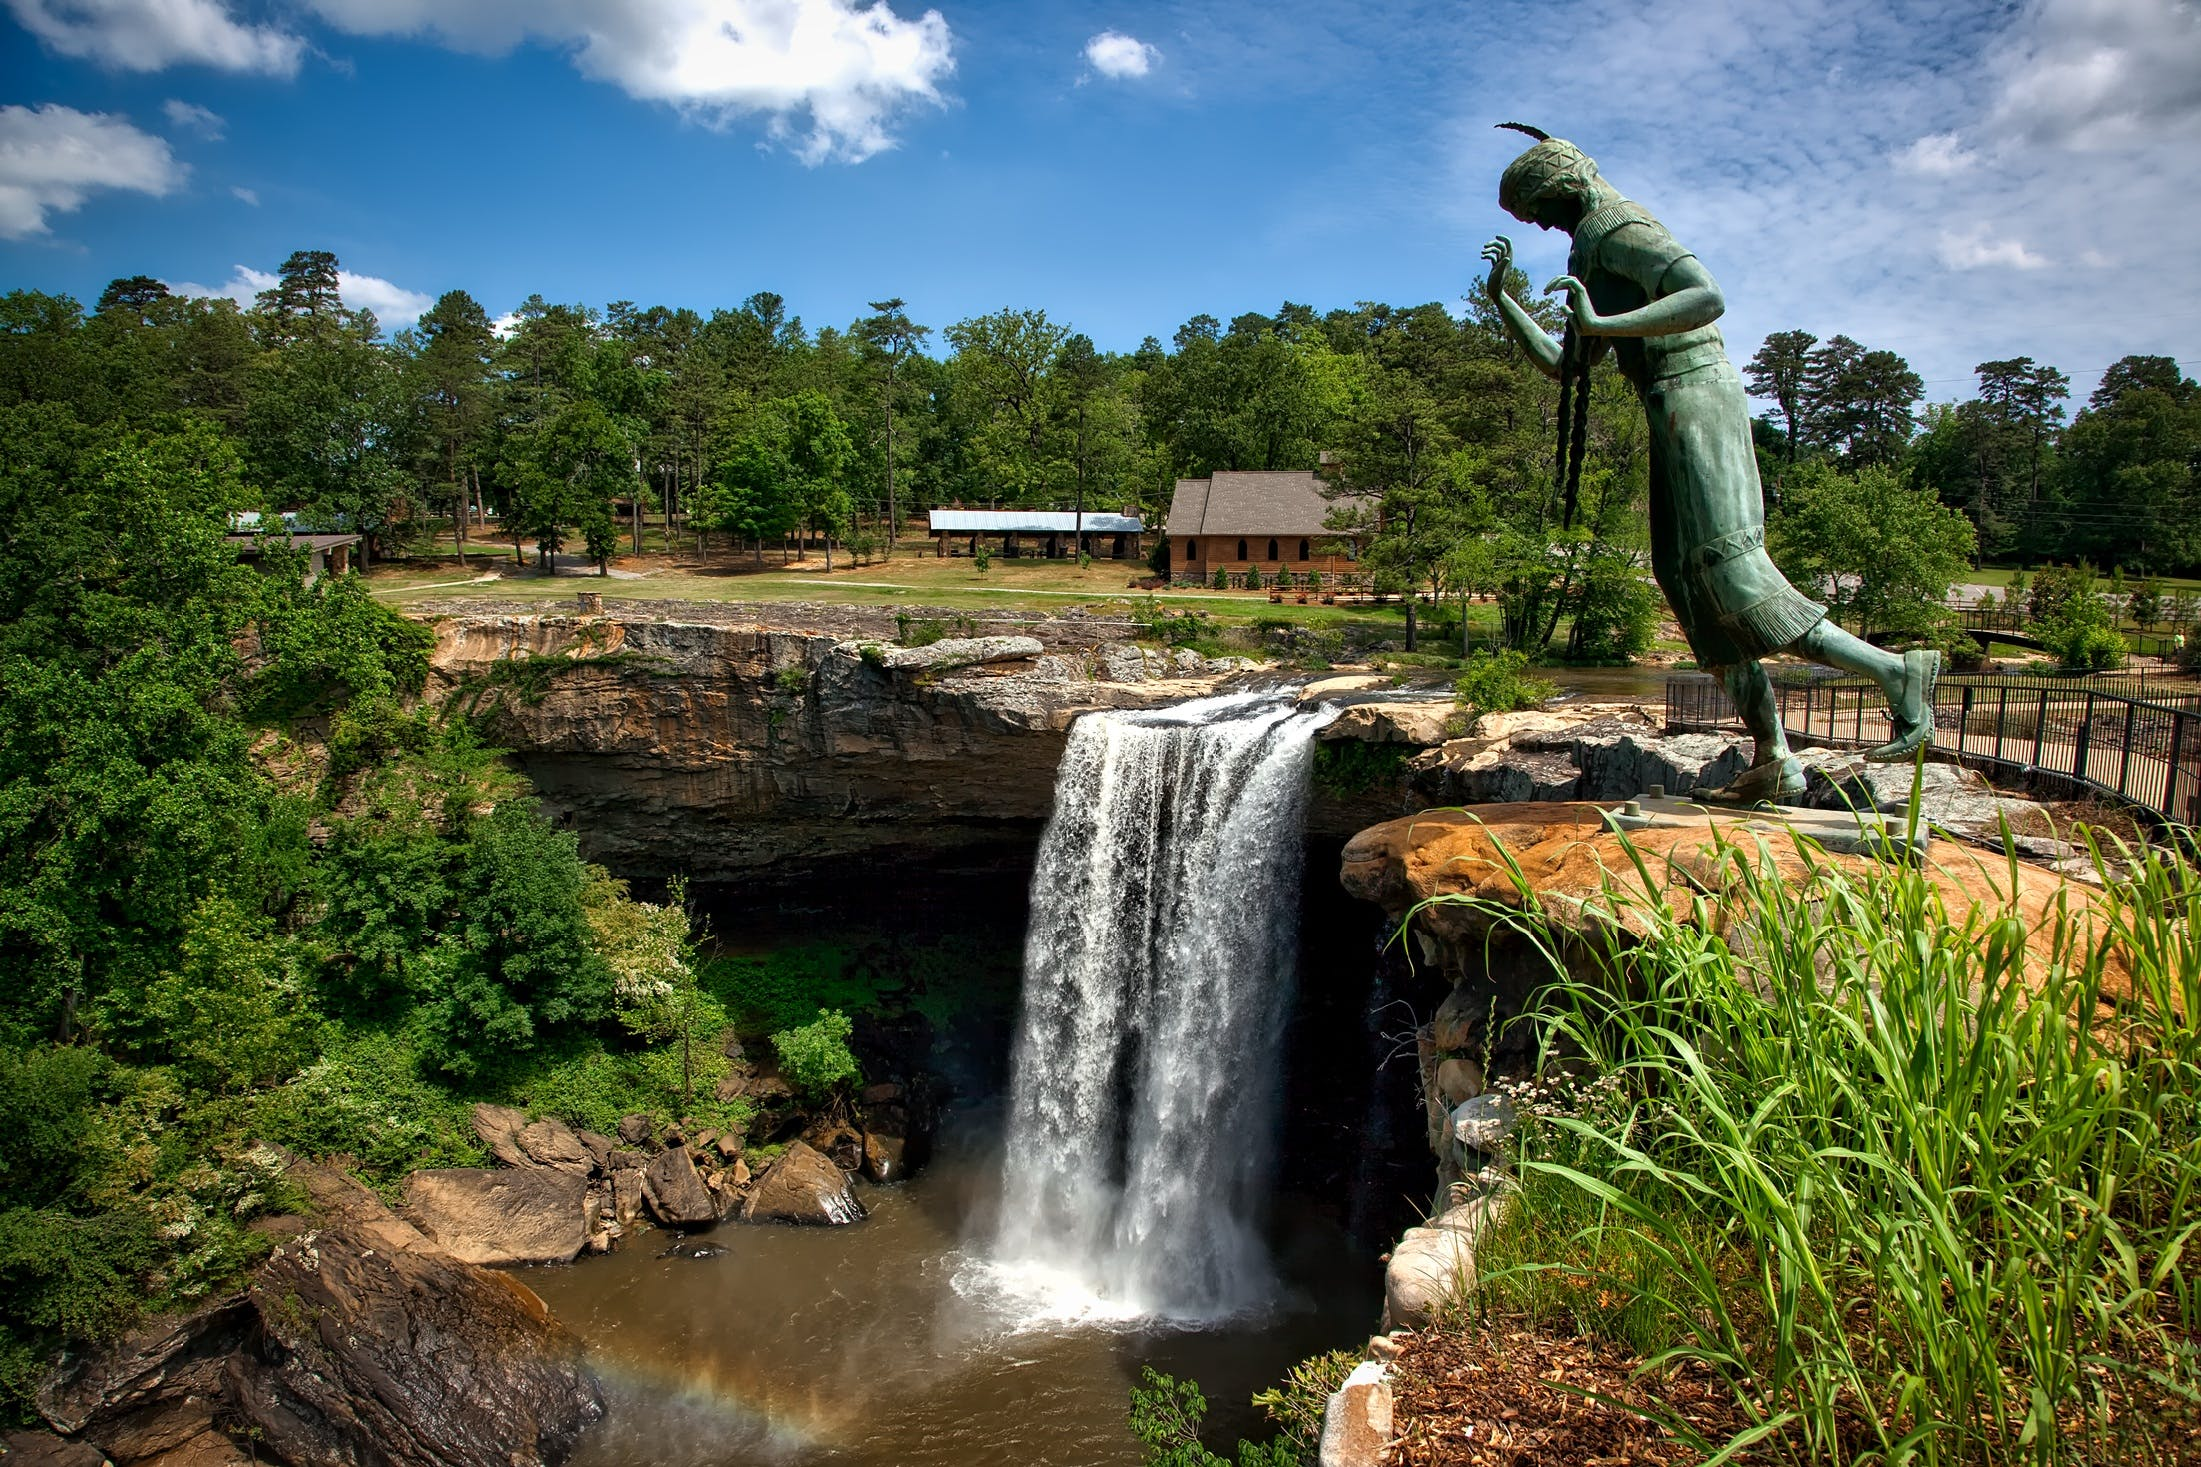 alabama, attractions, clouds